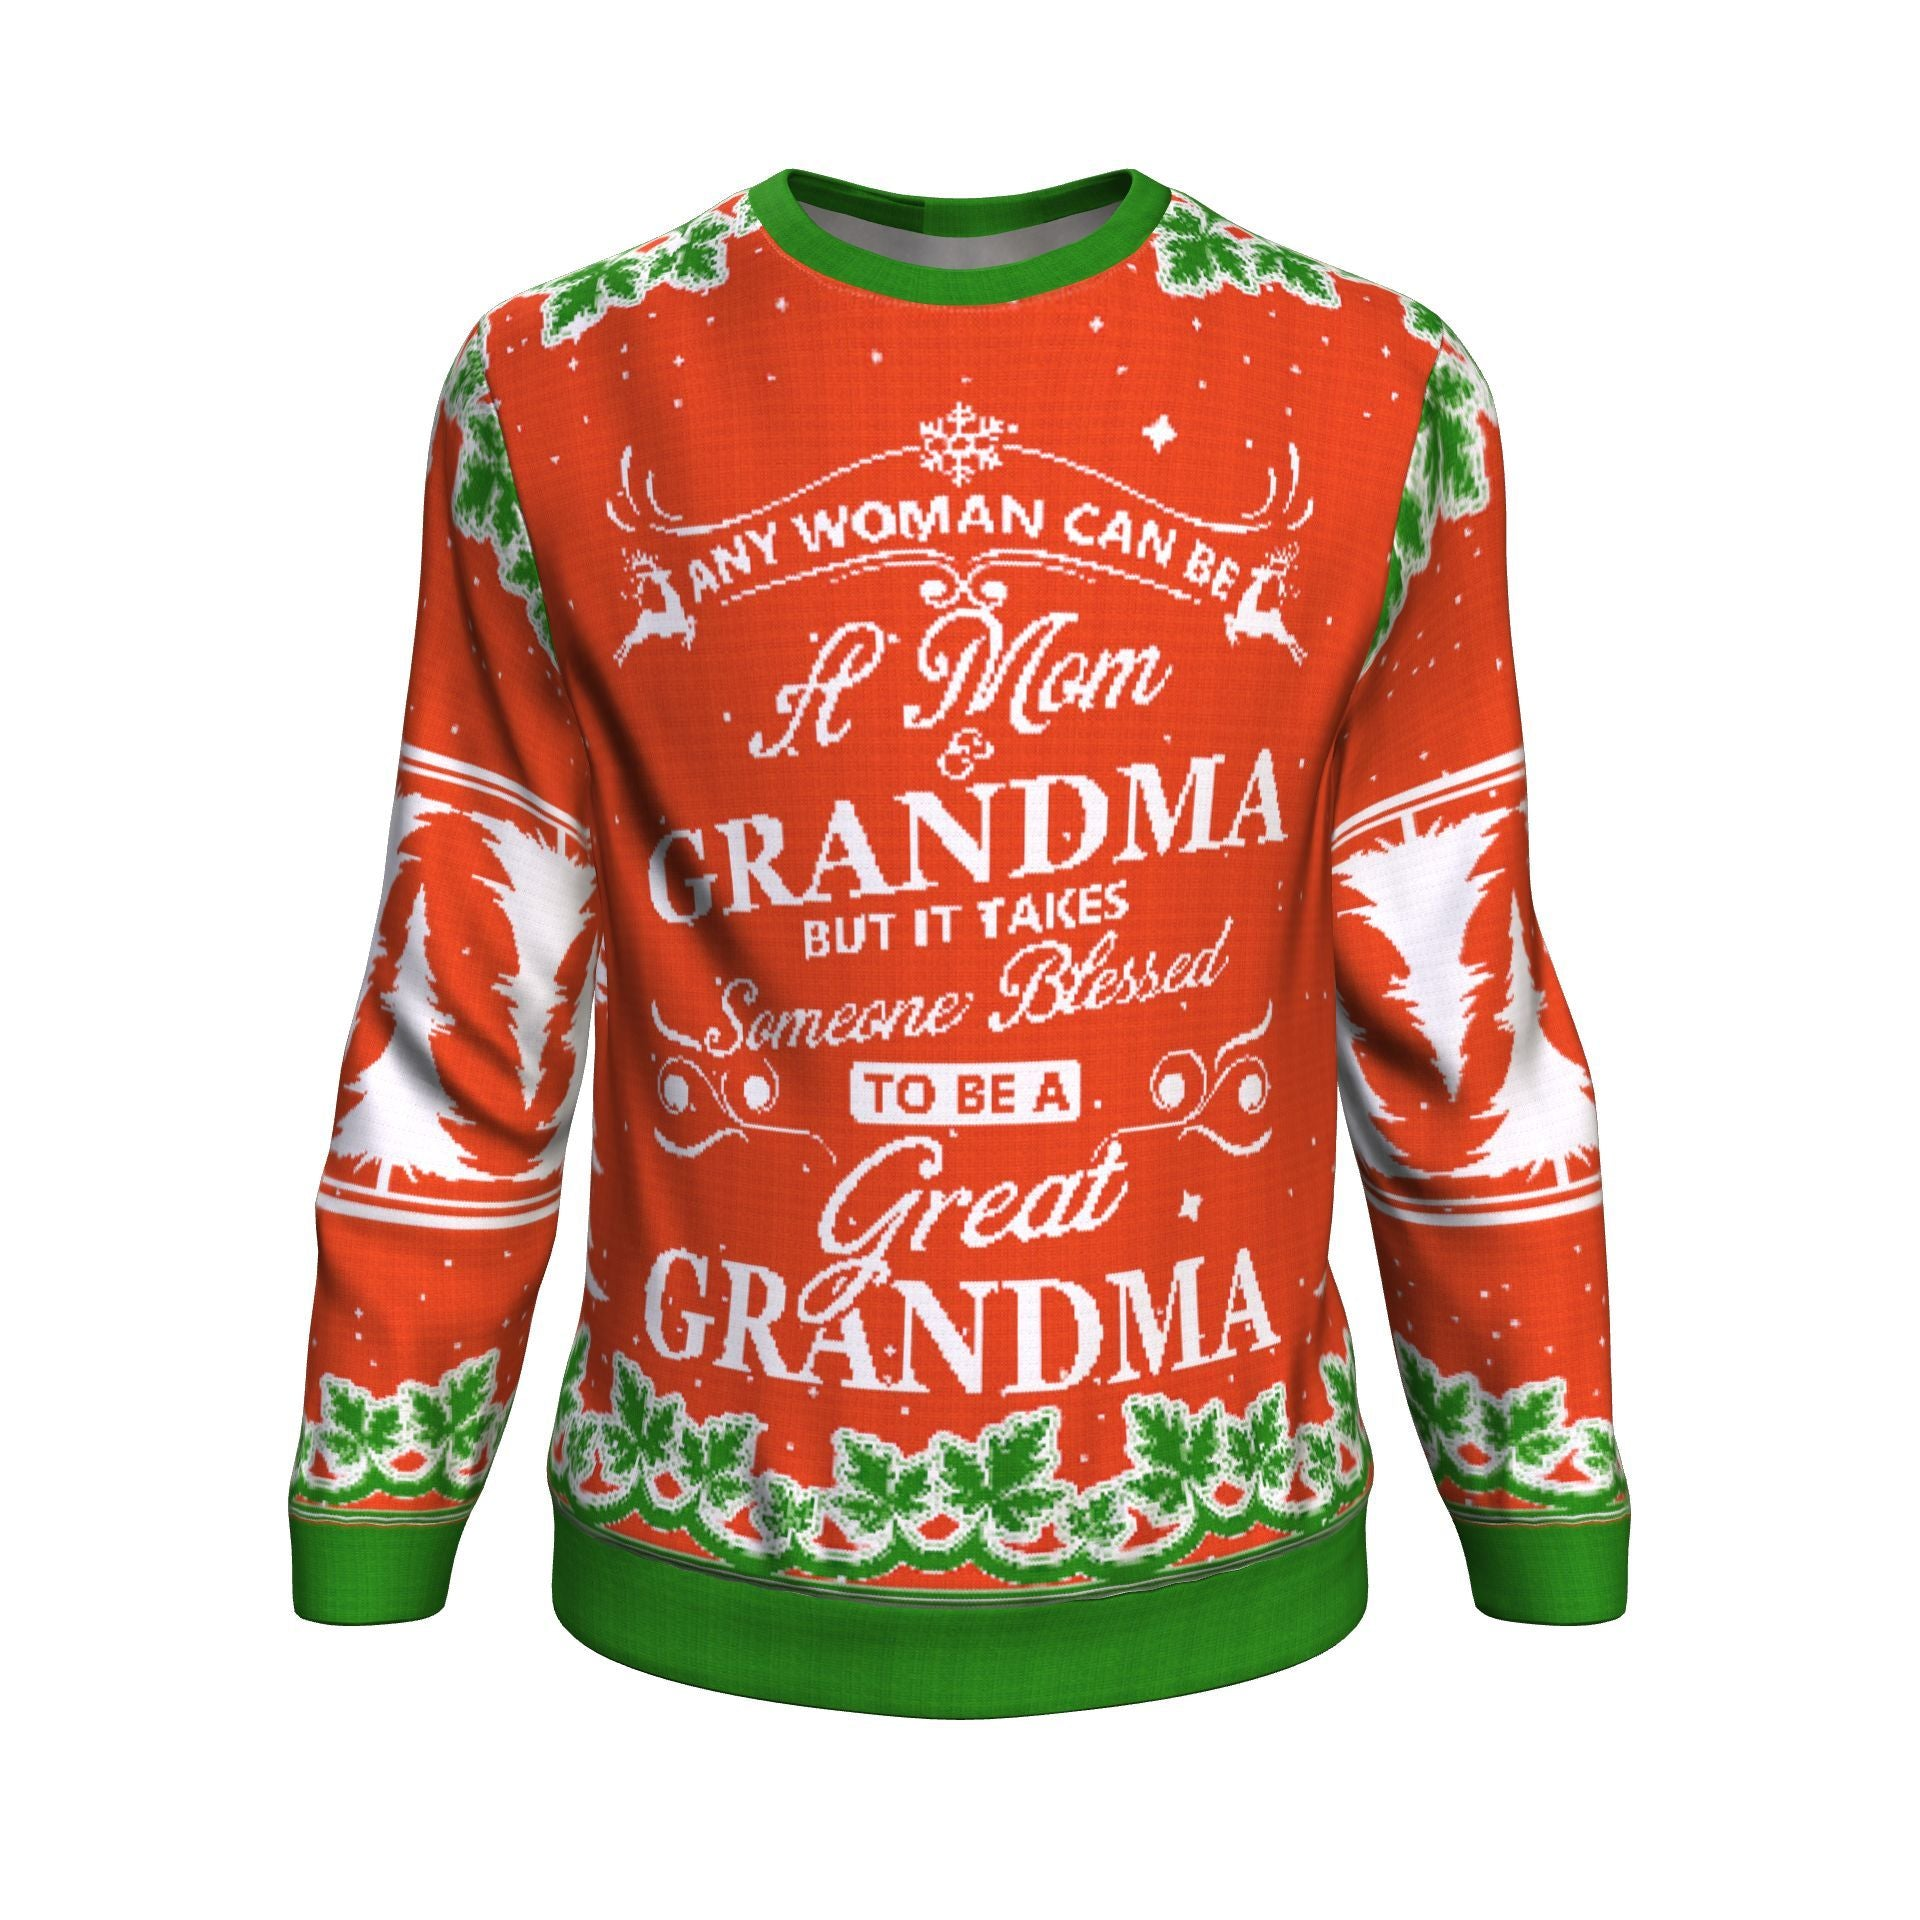 Buy any woman can be a mom grandma but it takes someone blessed to be a great grandma UGLY CHRISTMAS SWEATER - Familyloves hoodies t-shirt jacket mug cheapest free shipping 50% off